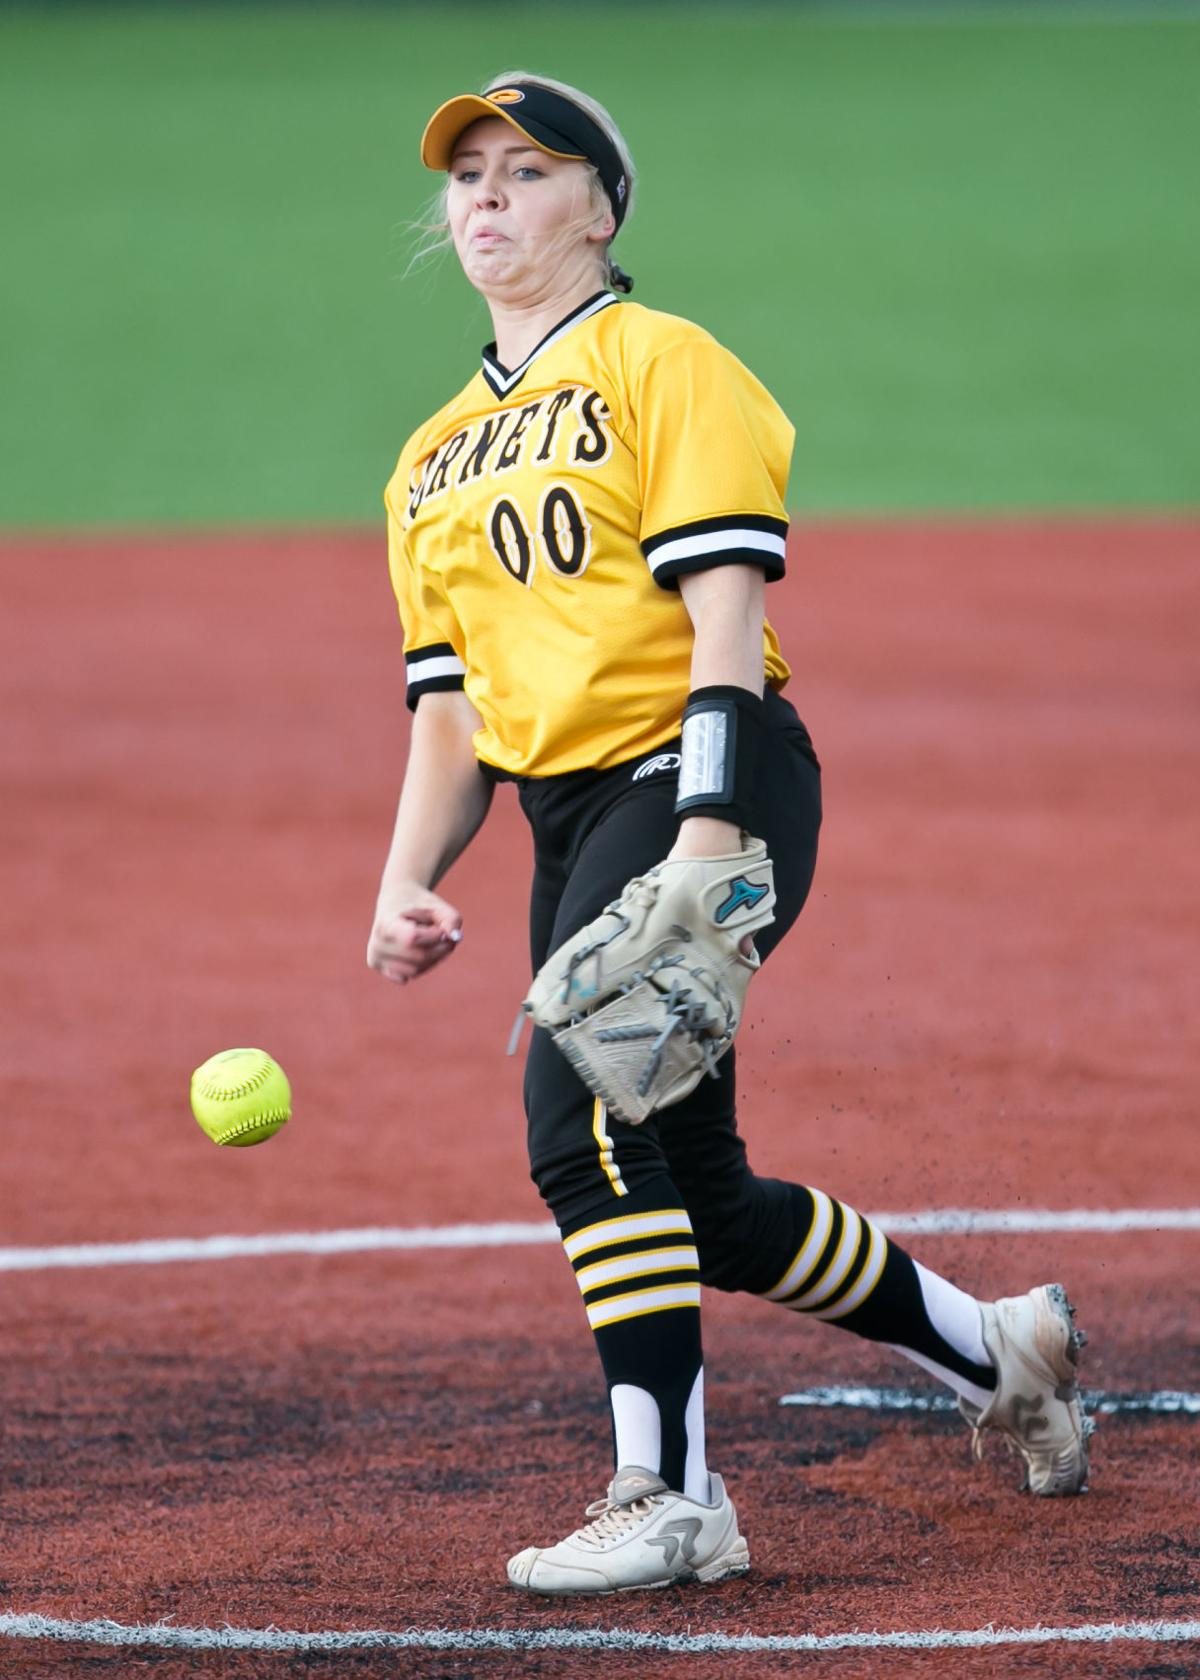 Gatesville vs. Liberty Hill Softball game 2 of the area round Playoffs